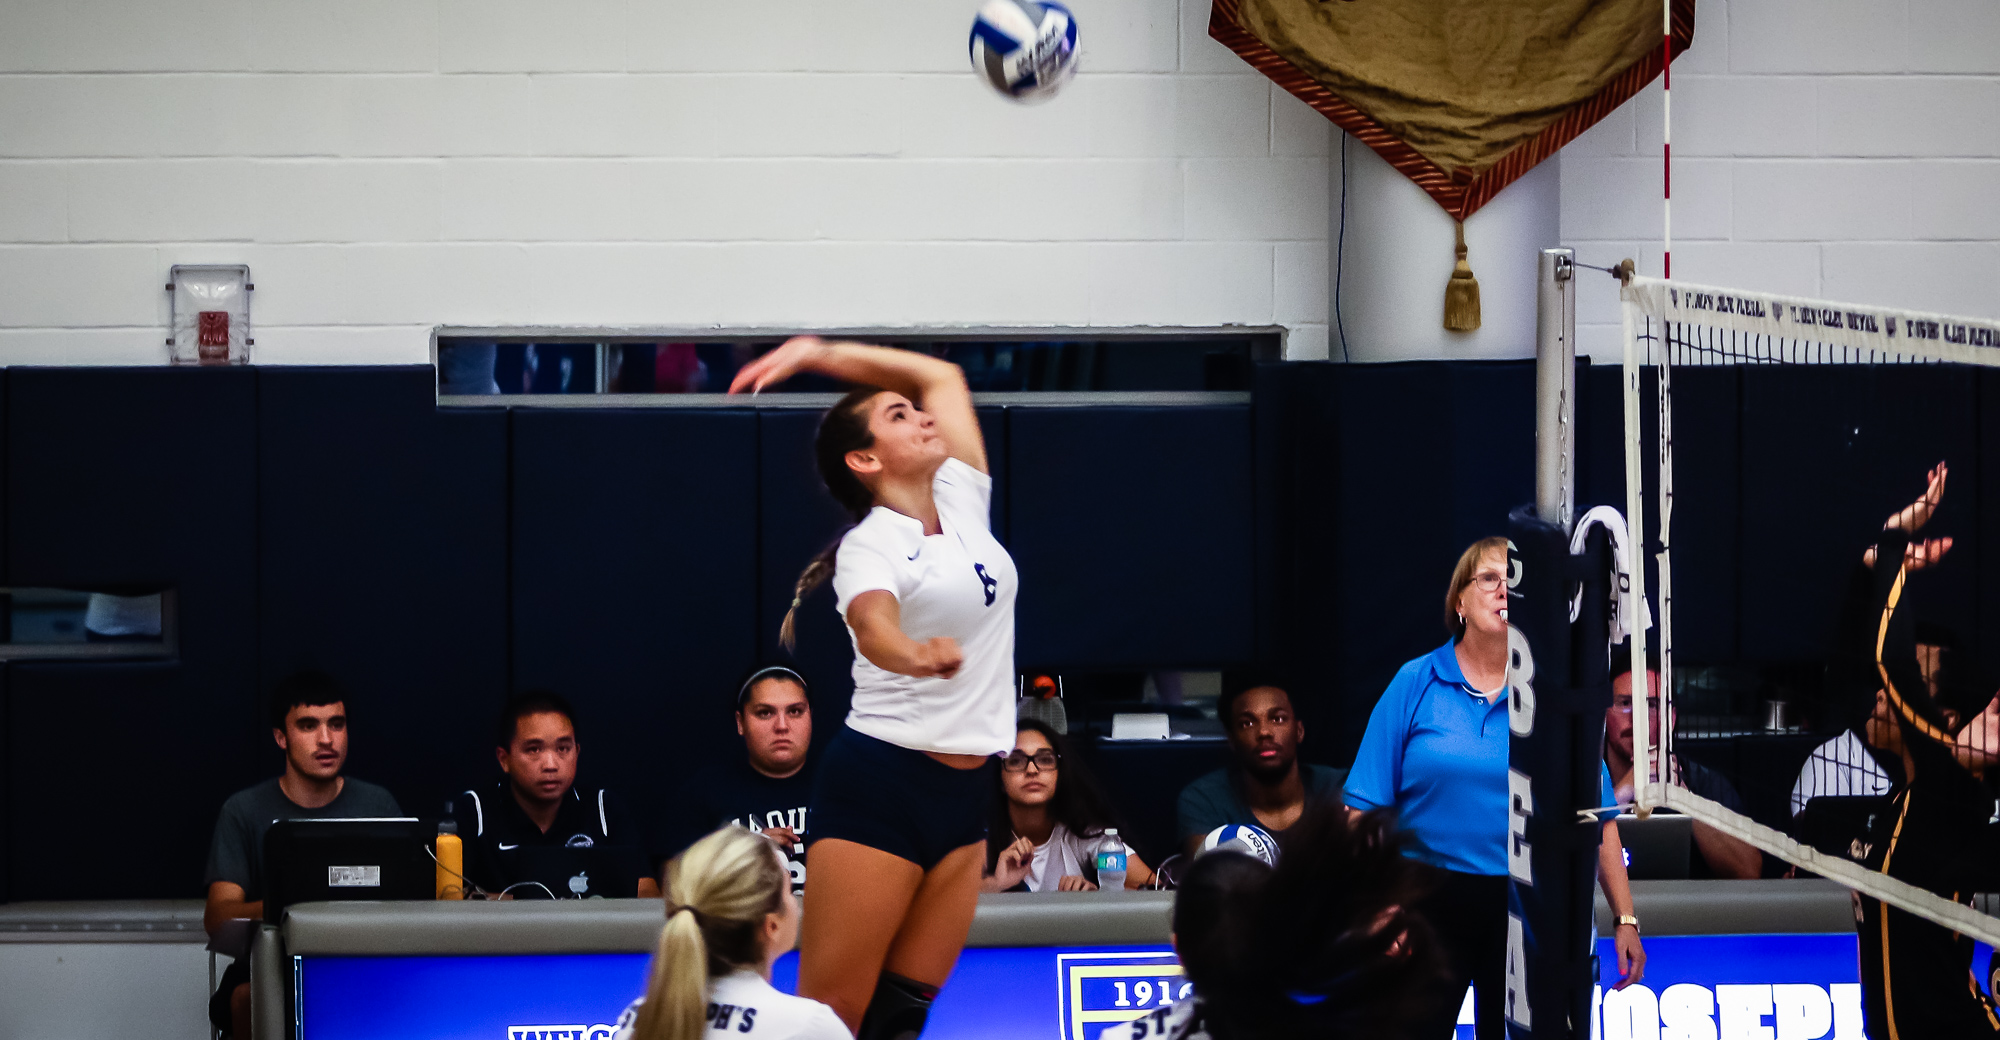 Women's Volleyball Rolls Past Medgar Evers in Straight Sets to Open 2017